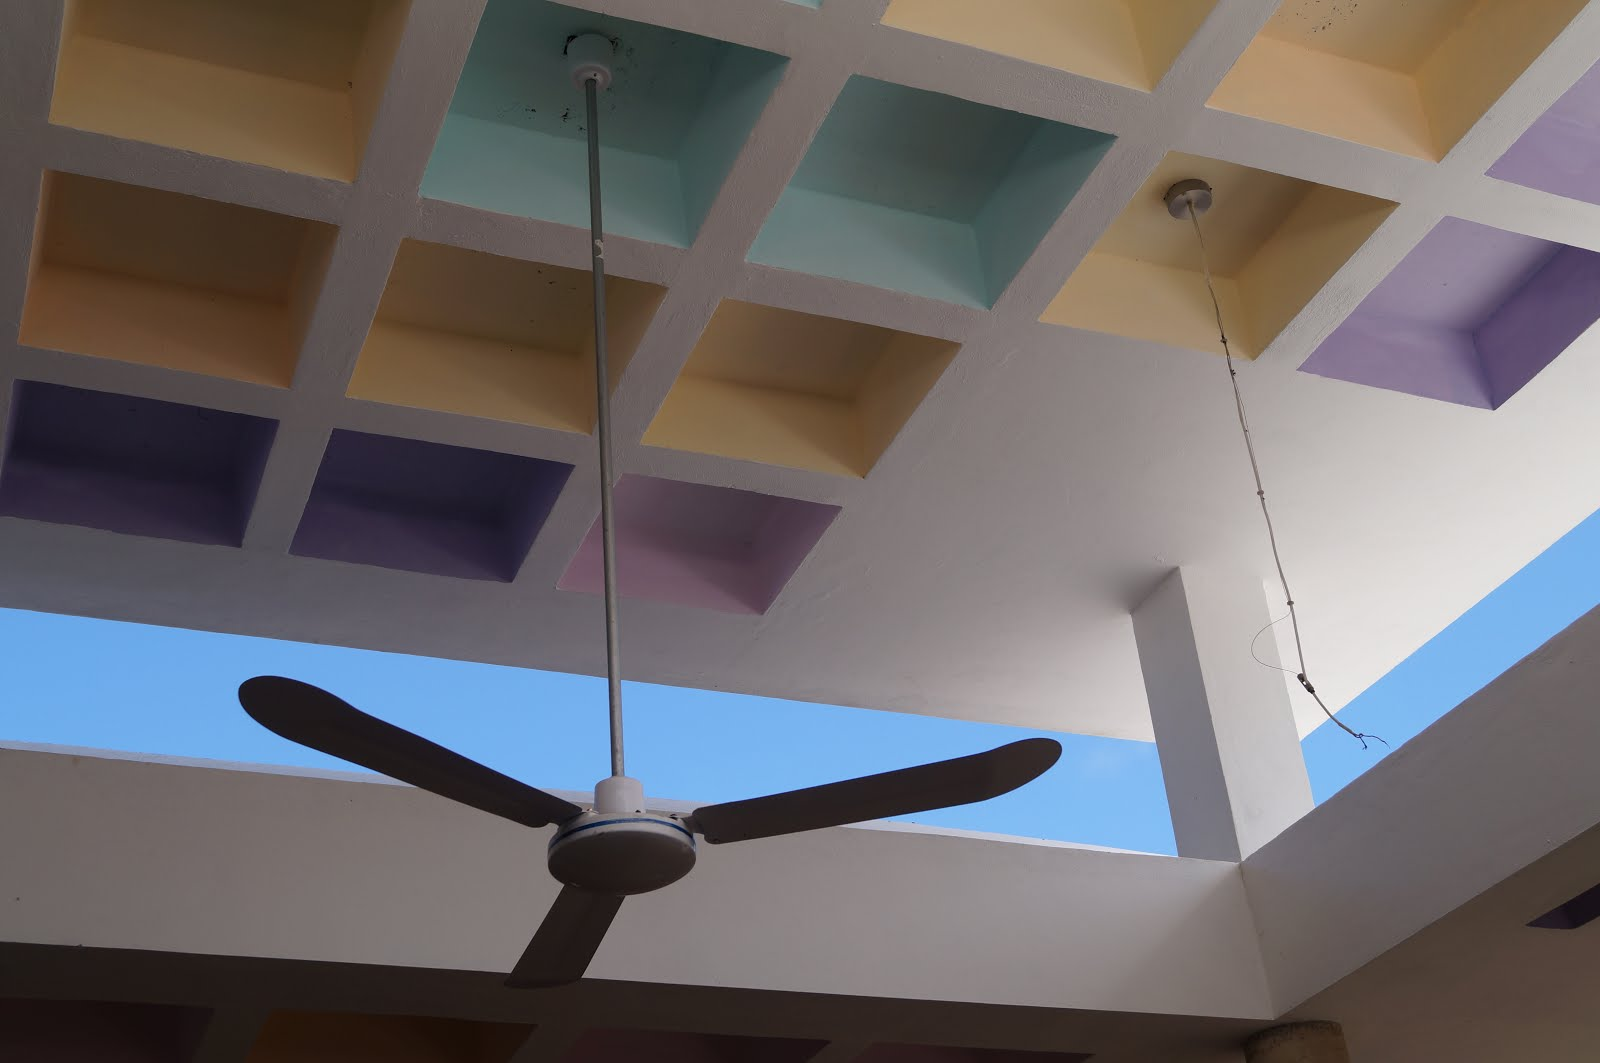 Fan against pastels and sky in Municipal Market of Cozumel